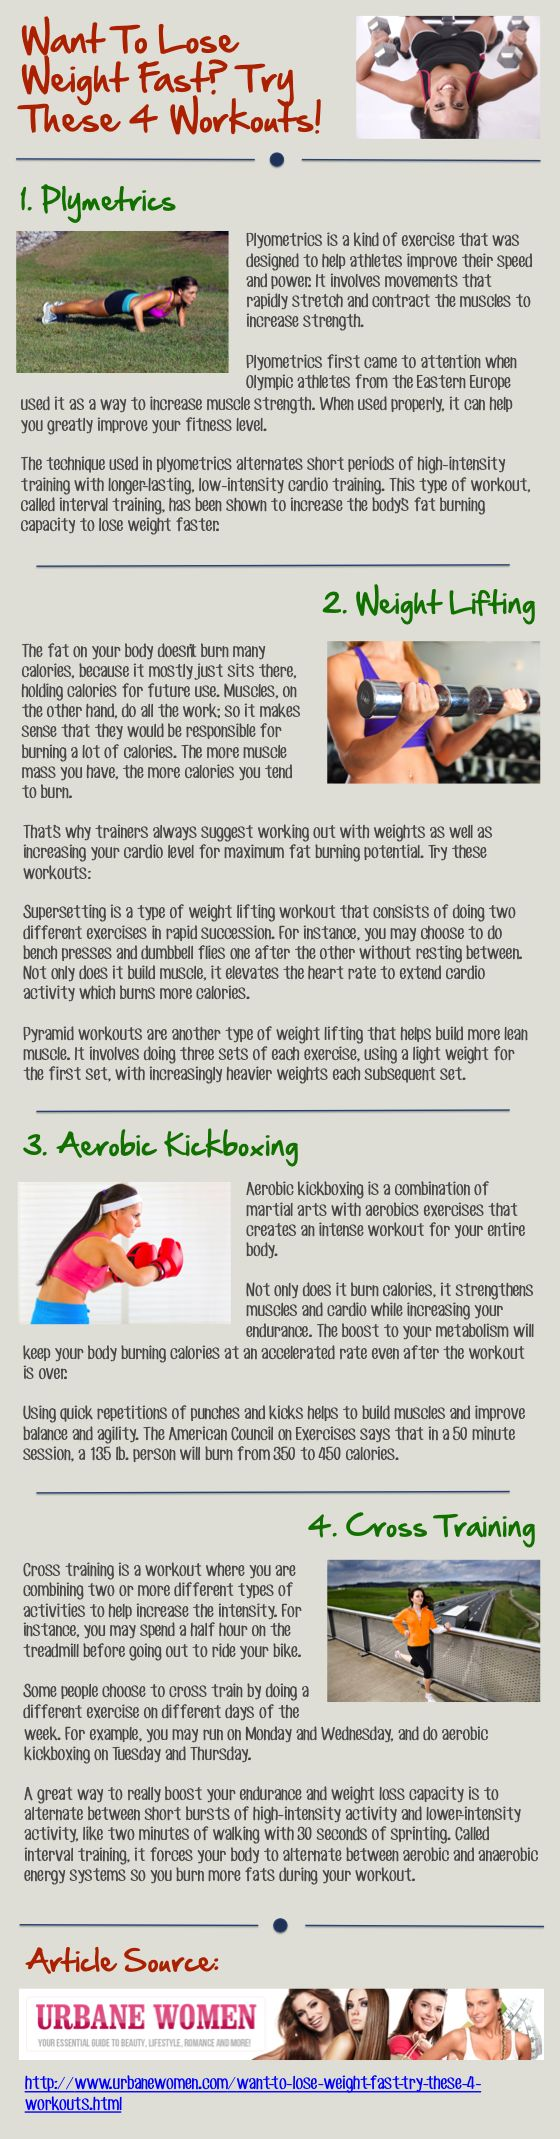 17 best ideas about want to lose weight on pinterest flat stomach workouts exercise